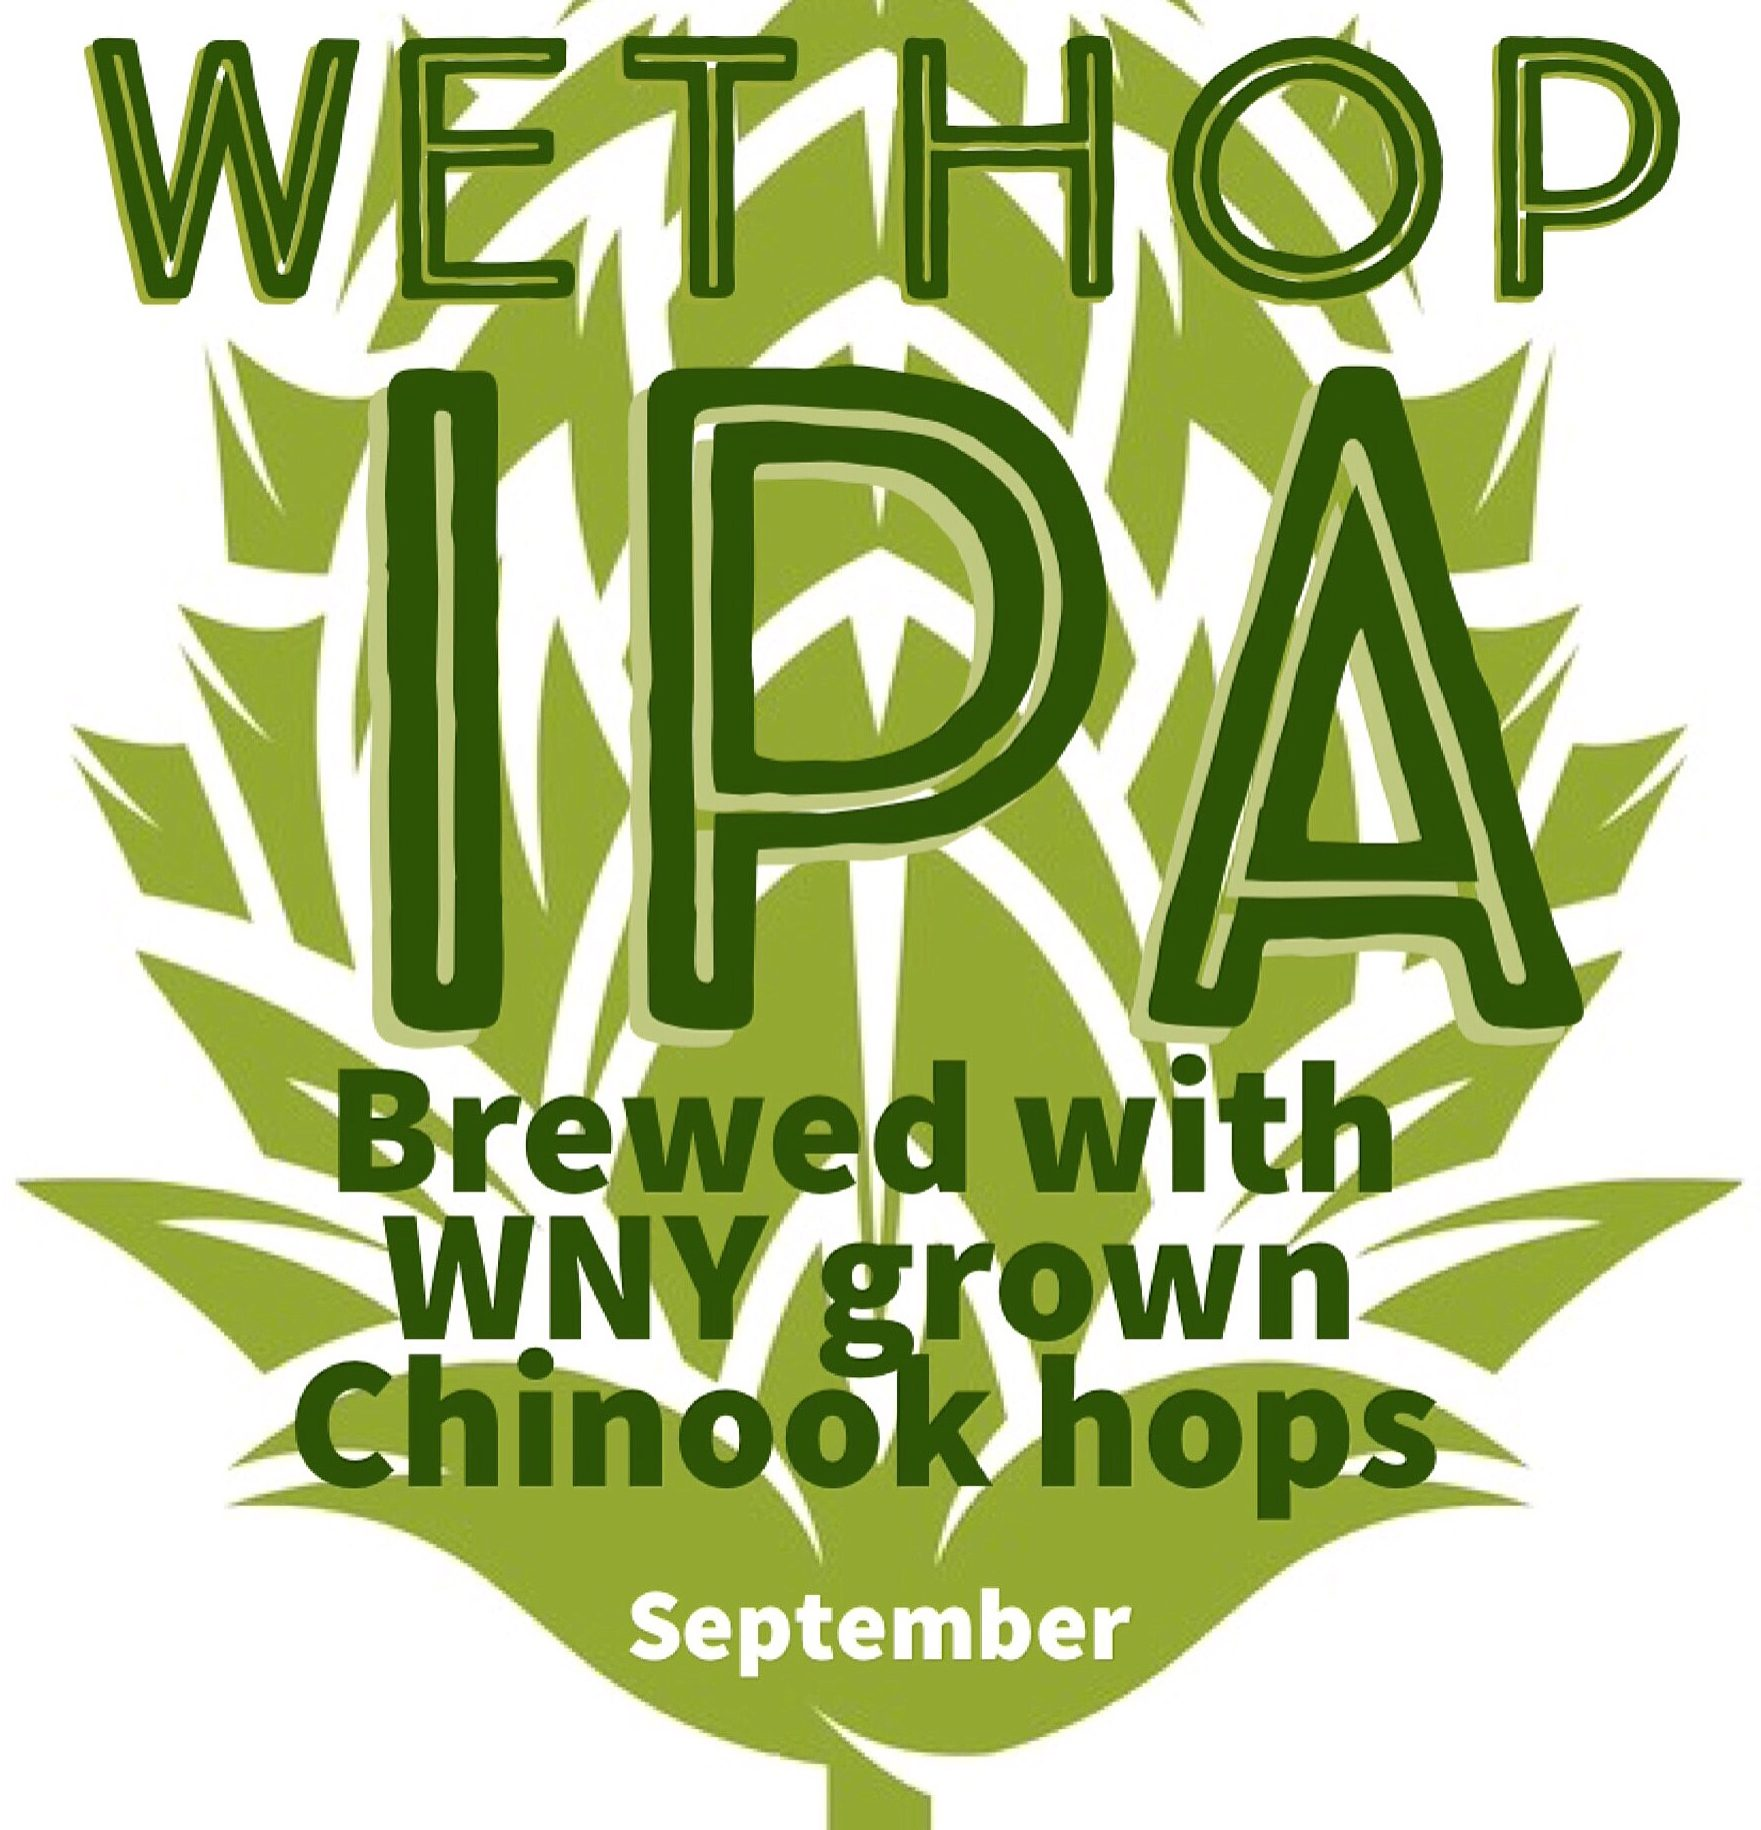 Wet-Hopped IPA is to be released Sept. 16, available only at Woodcock Brothers in Wilson. (photo courtesy of Woodcock Brothers)